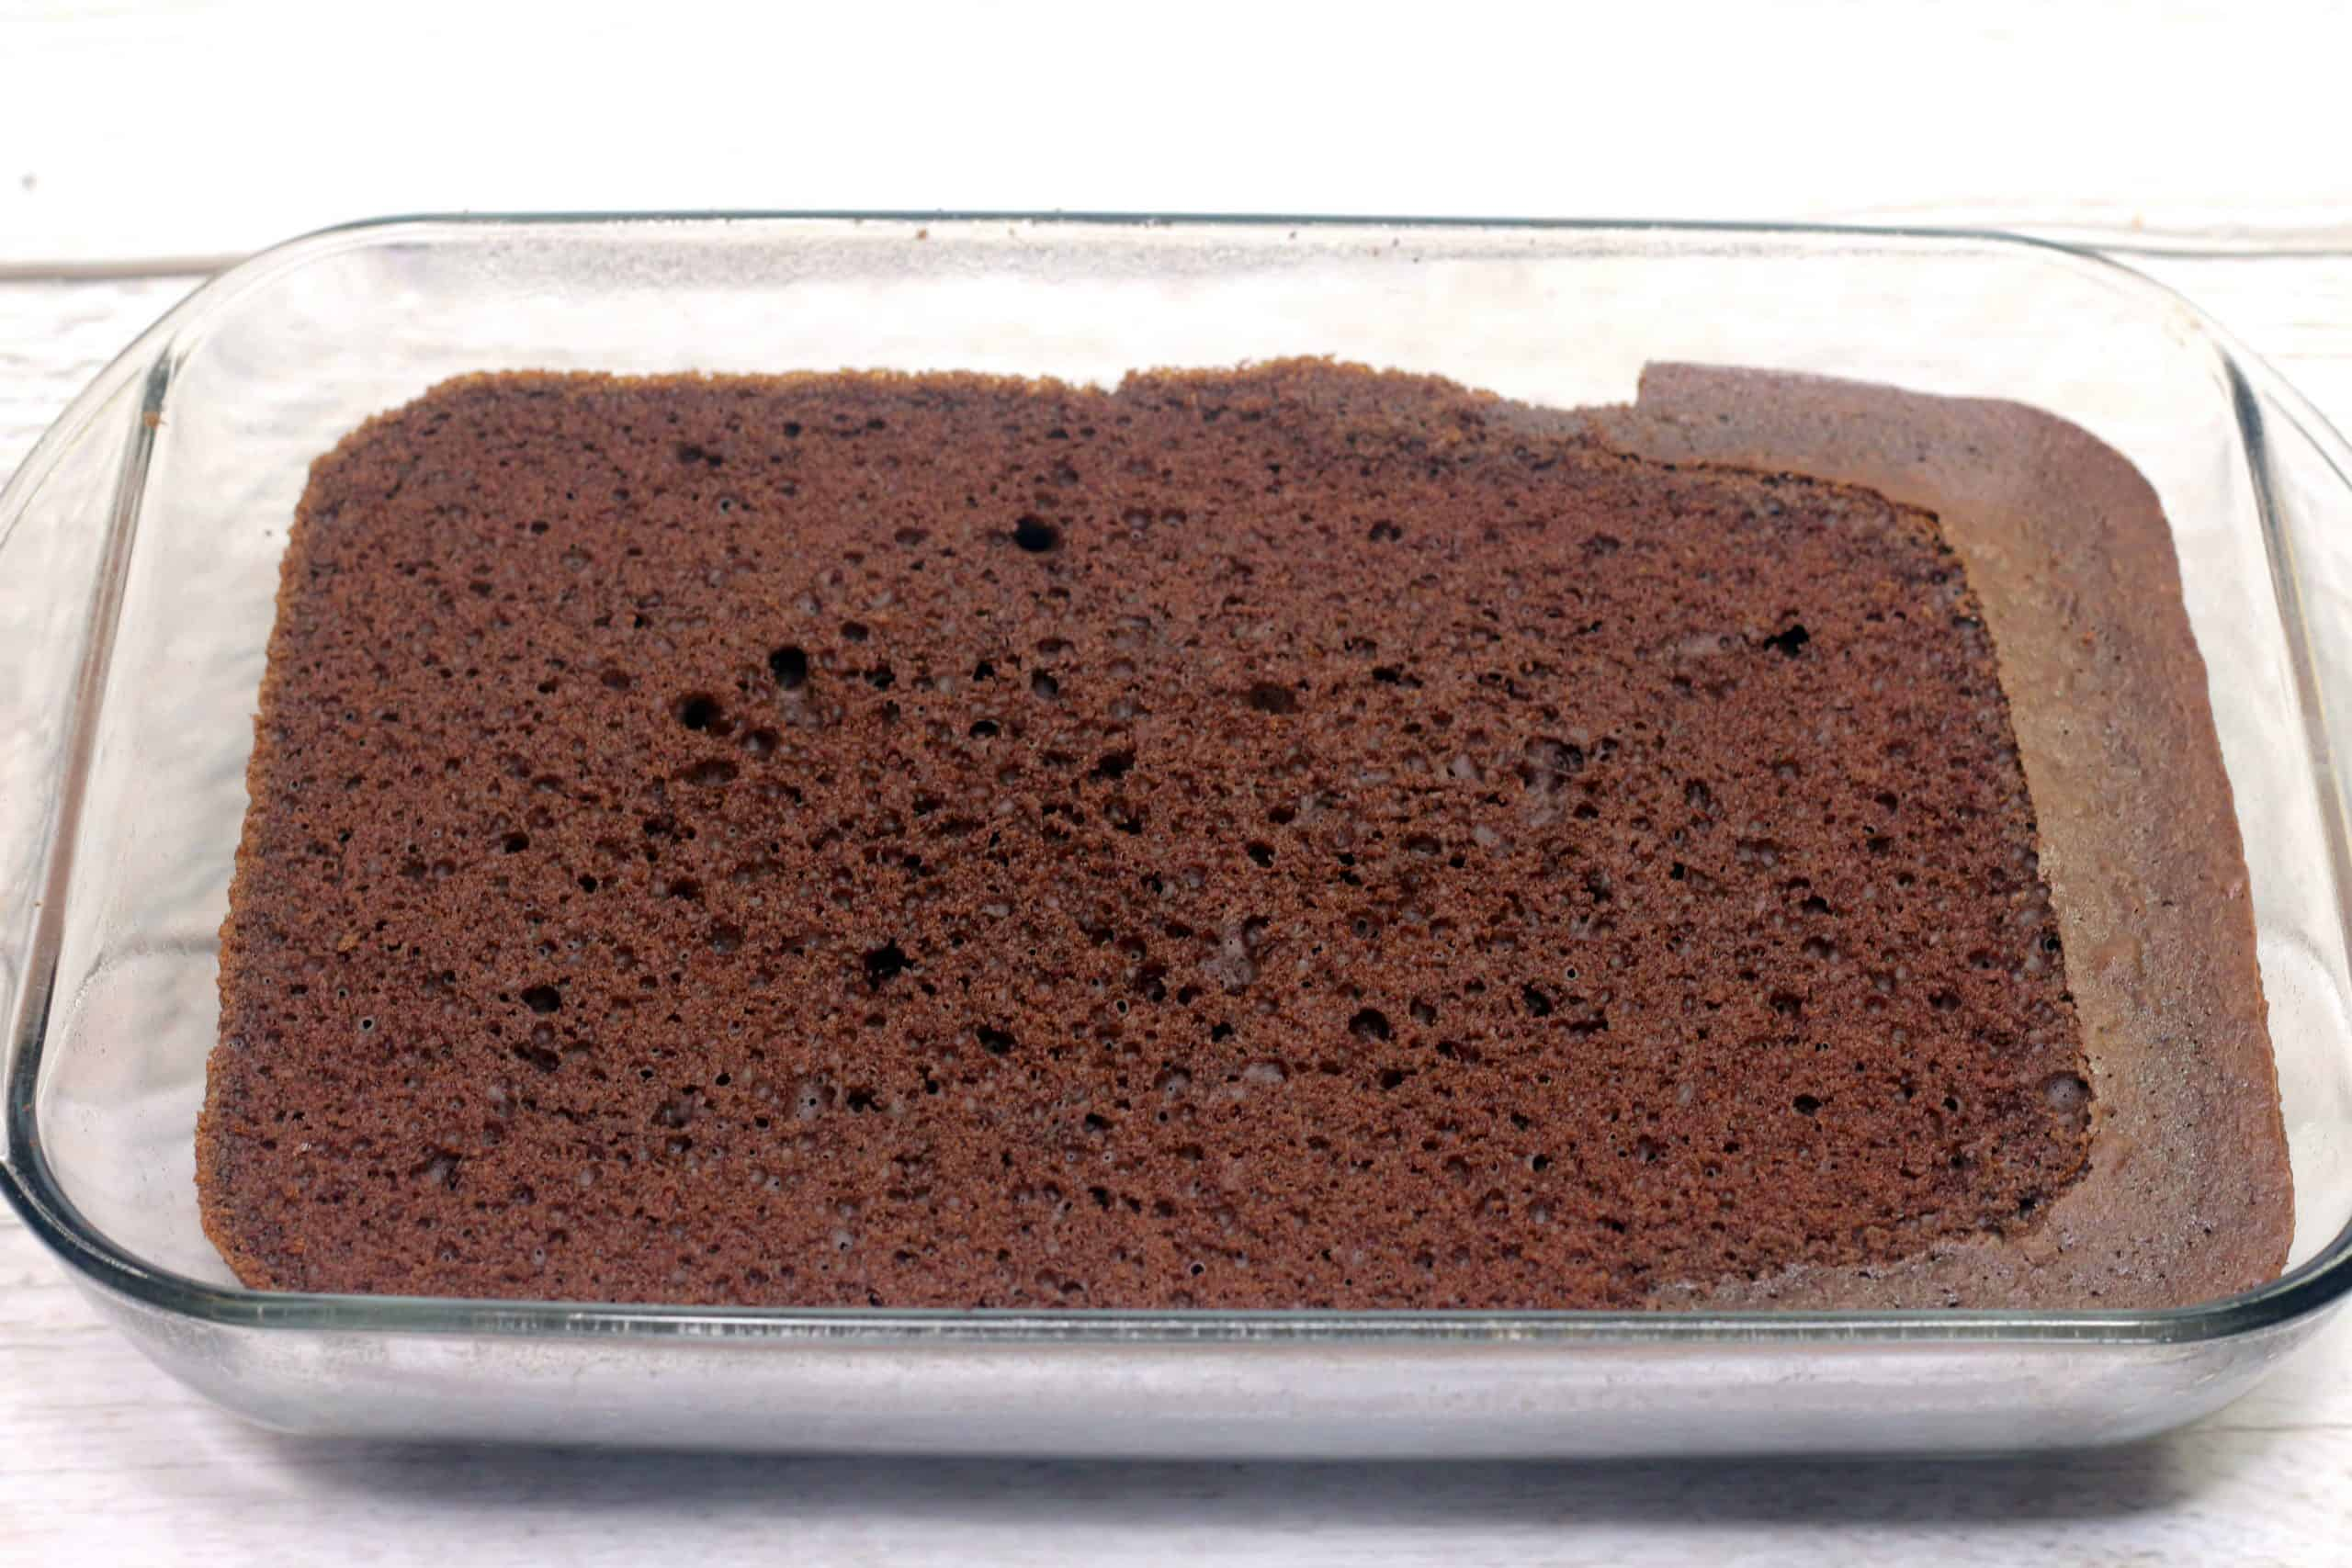 eggless chocolate cake out of the oven